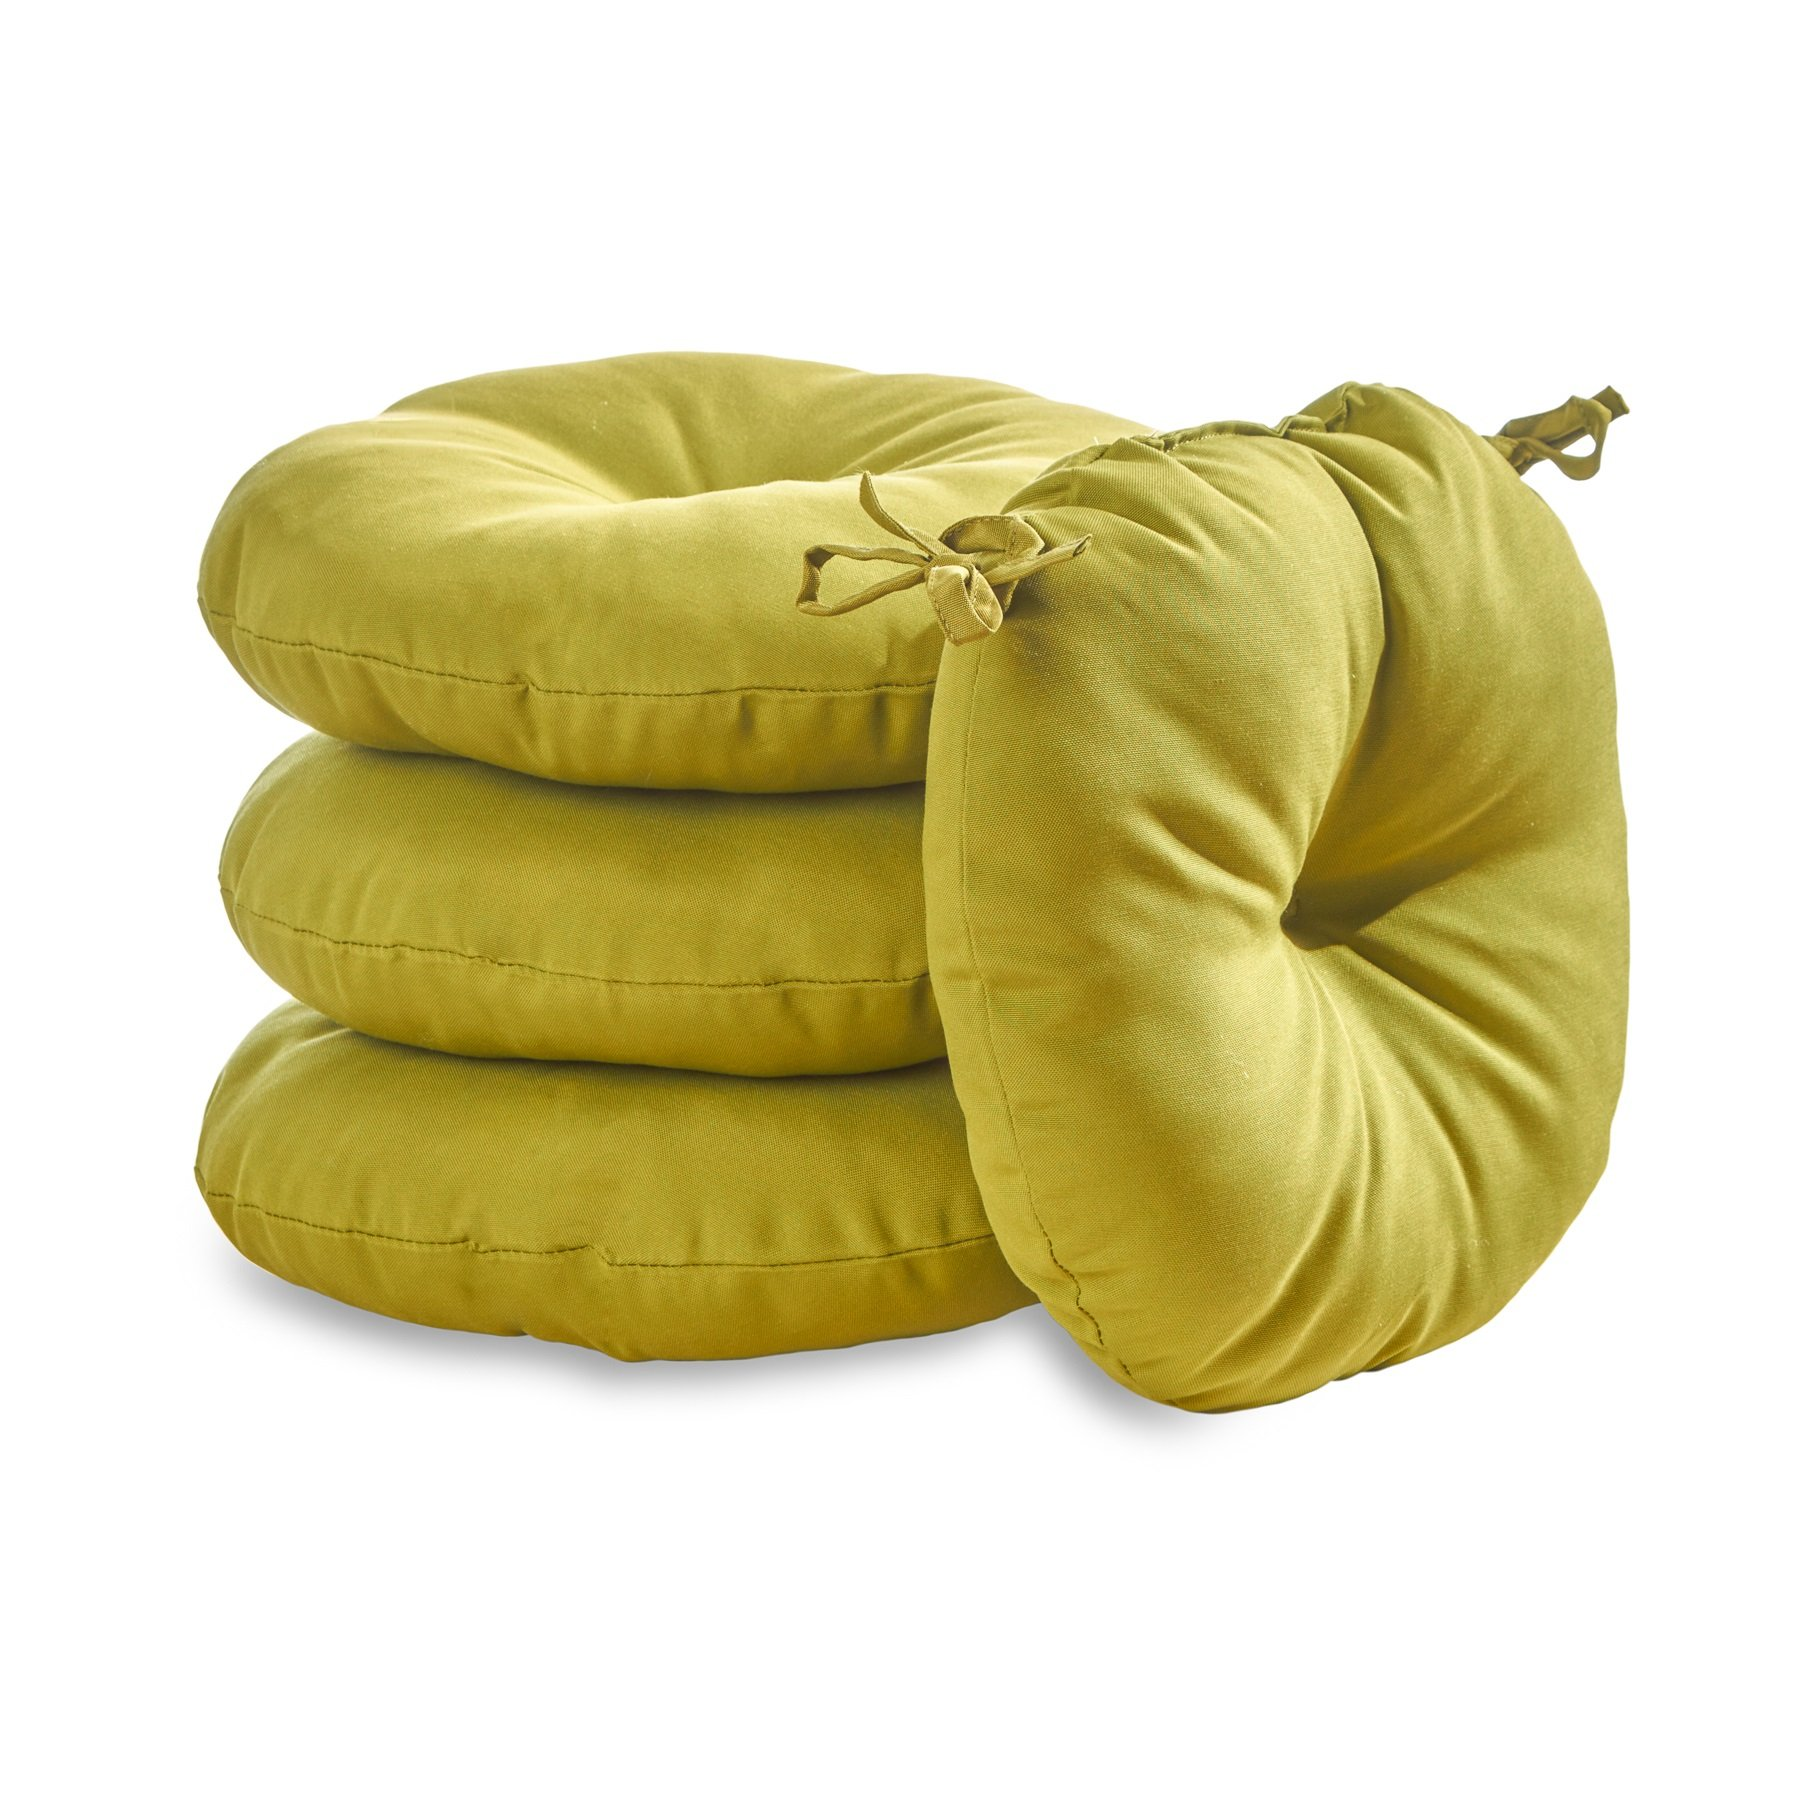 Greendale Home Fashions 18 in. Round Outdoor Bistro Chair Cushion (set of 4), Kiwi